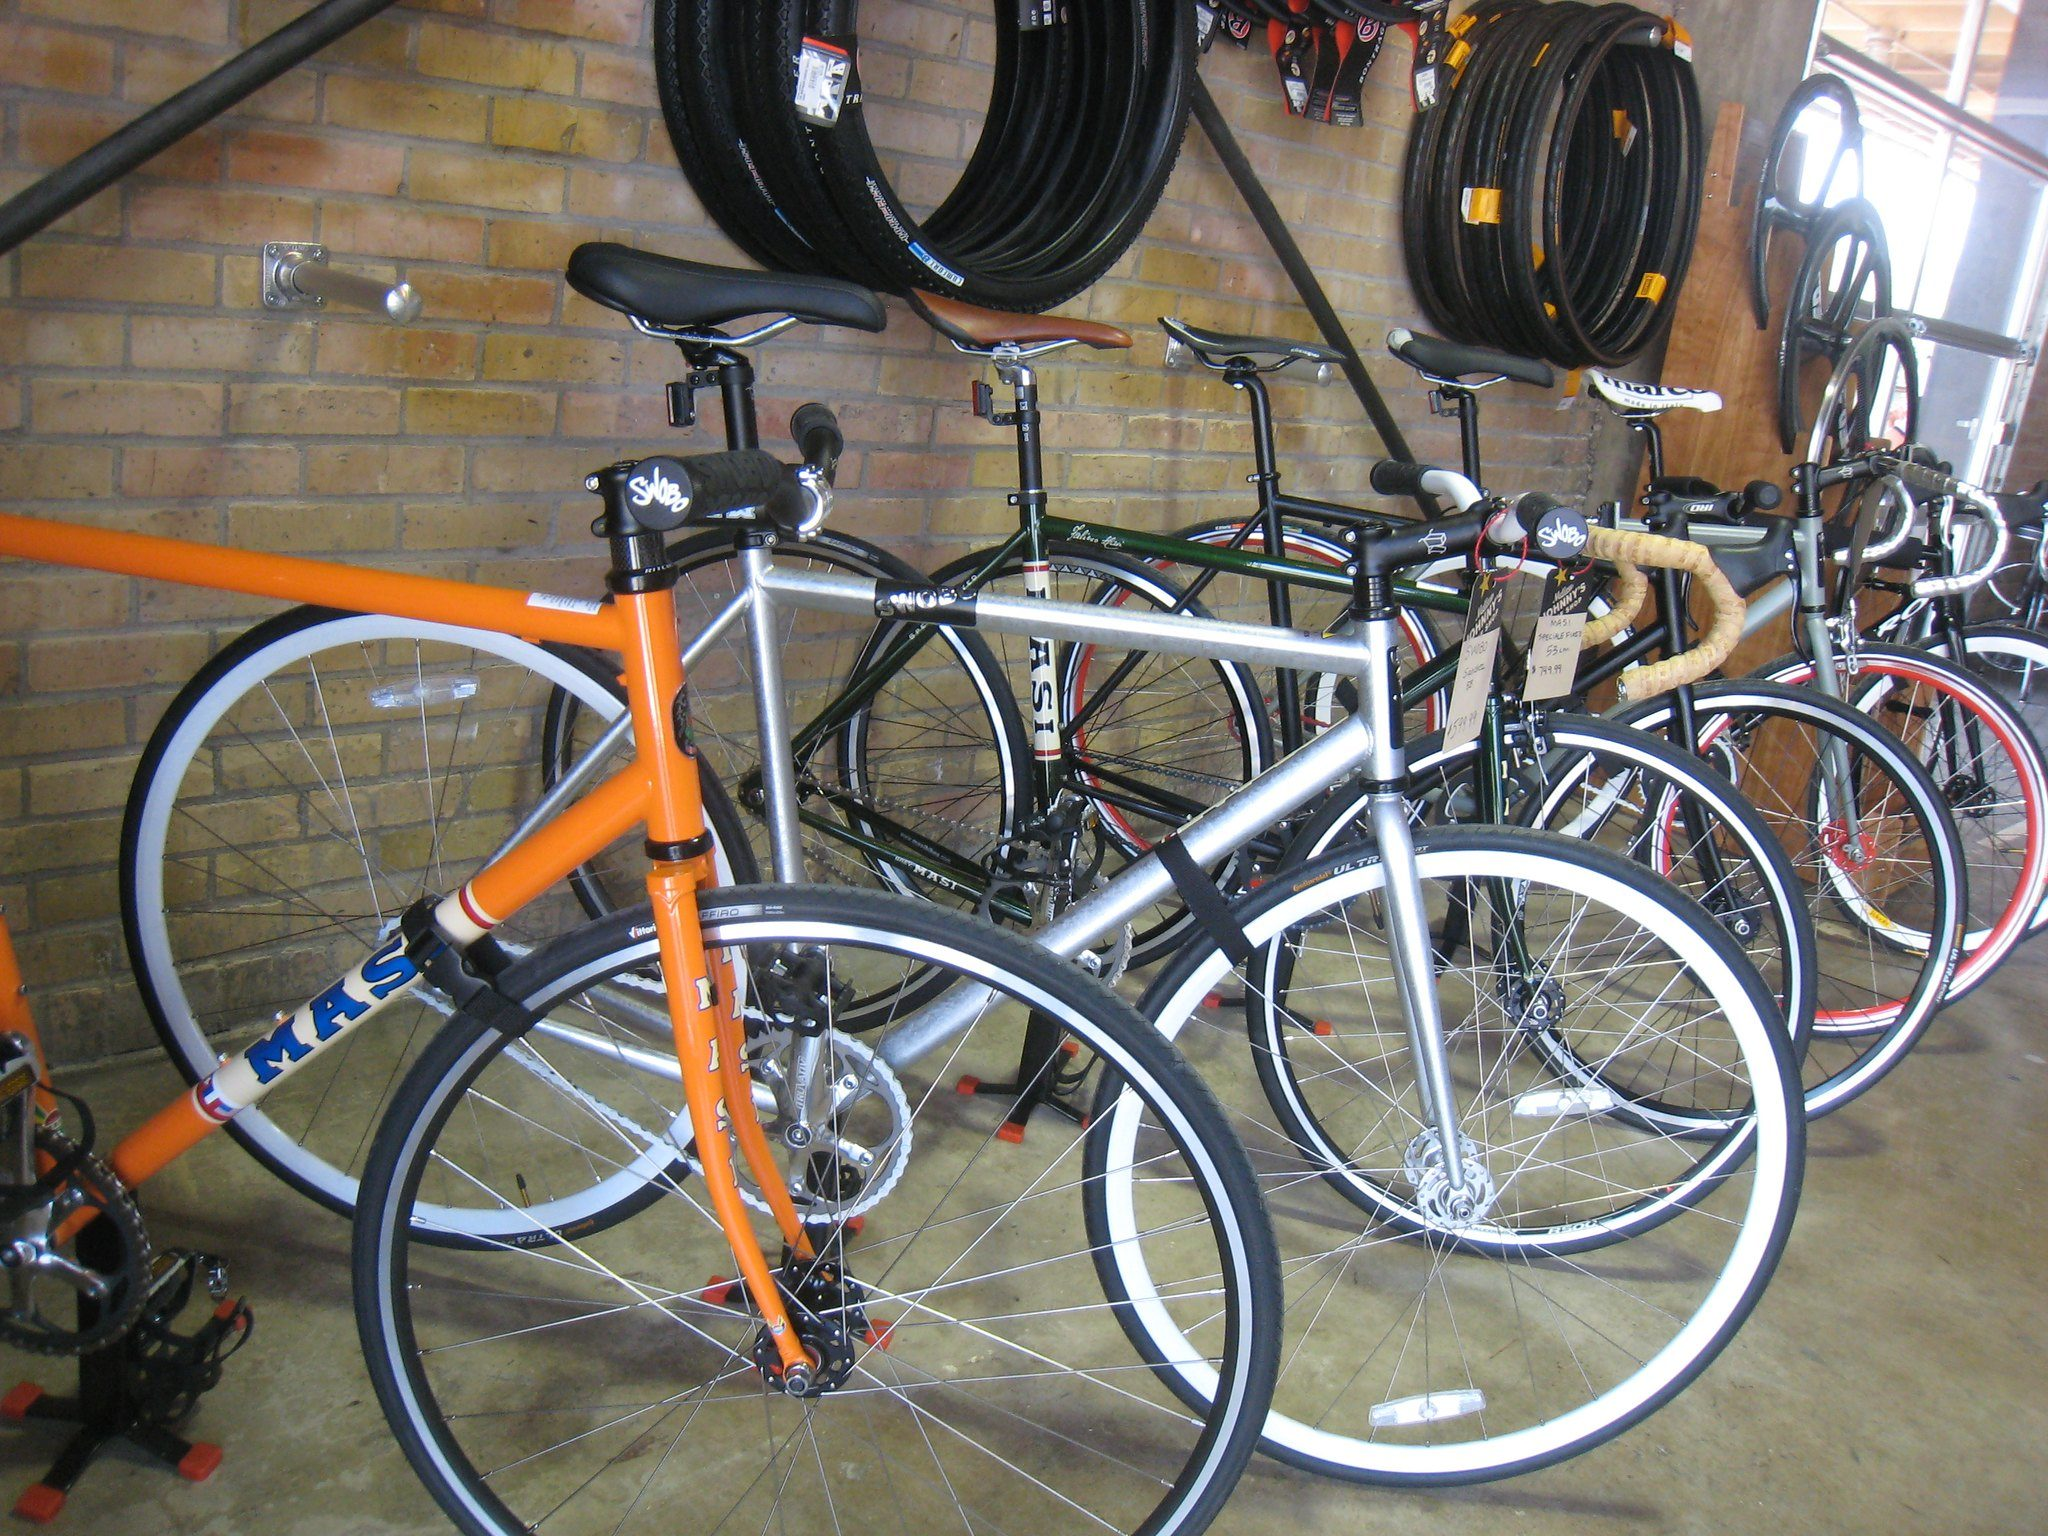 This photo shows a bunch of bikes in a bike shop.